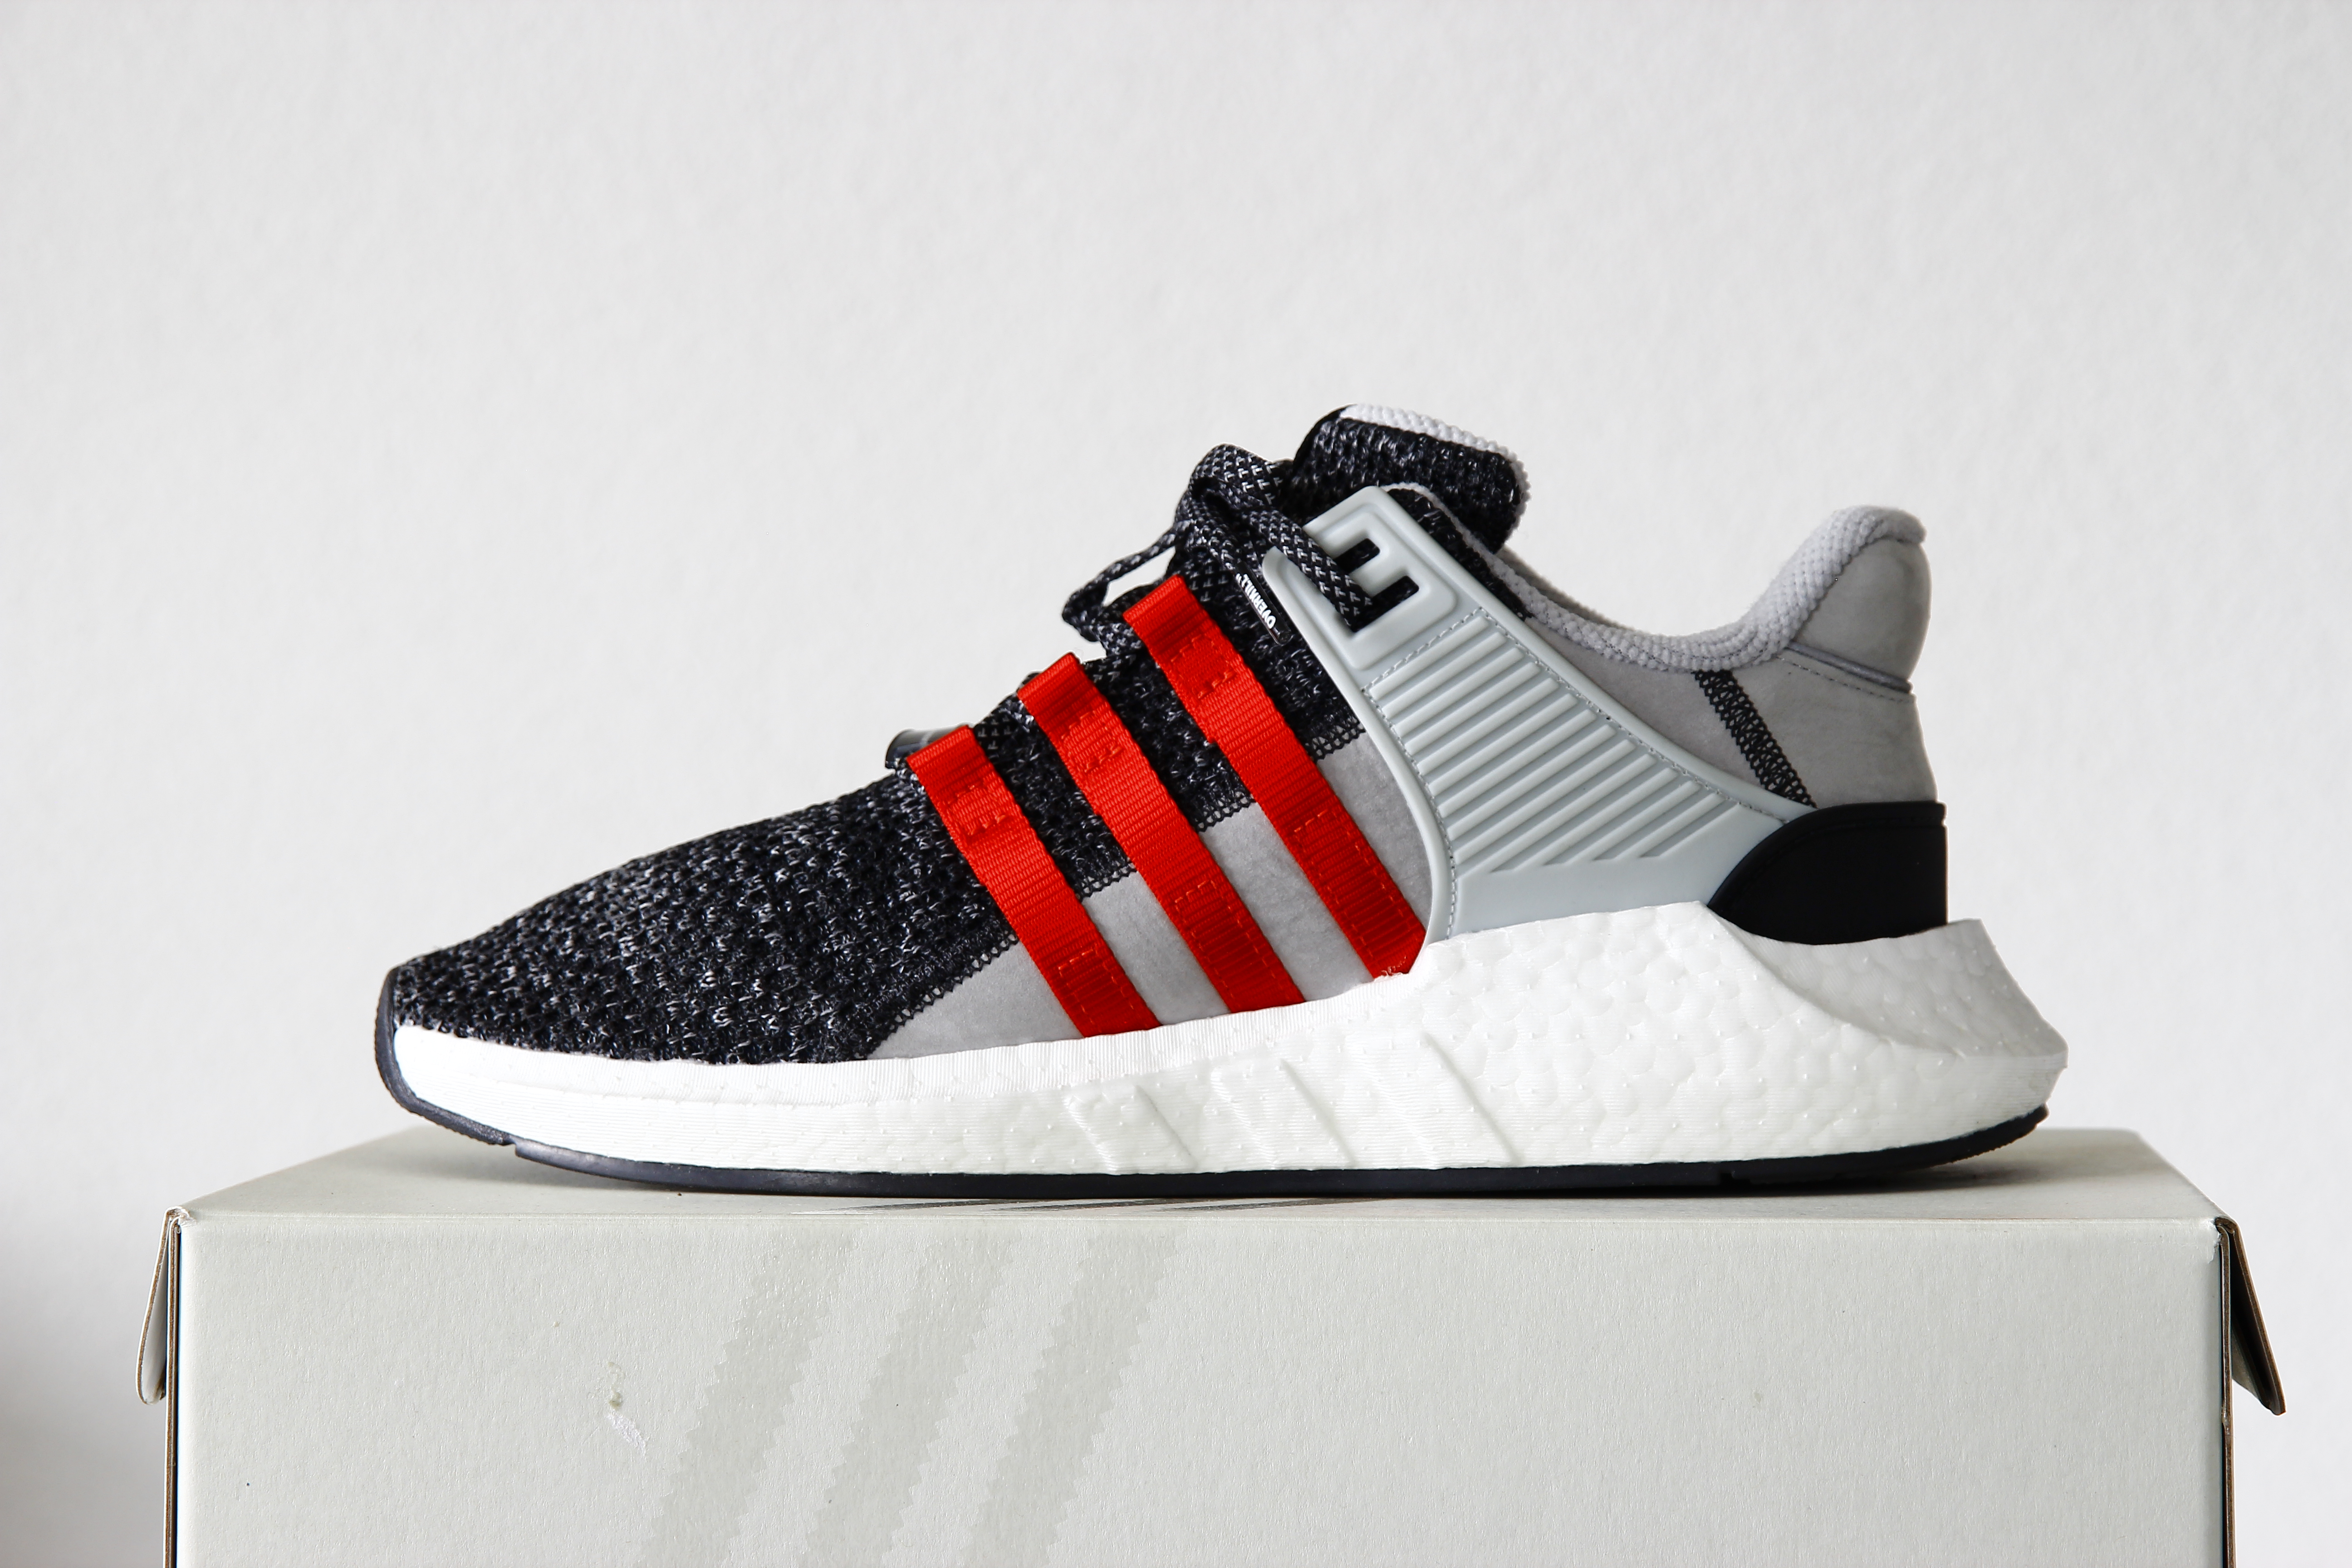 online store 1cafd f2eb0 Overkill x Adidas EQT Support Future -